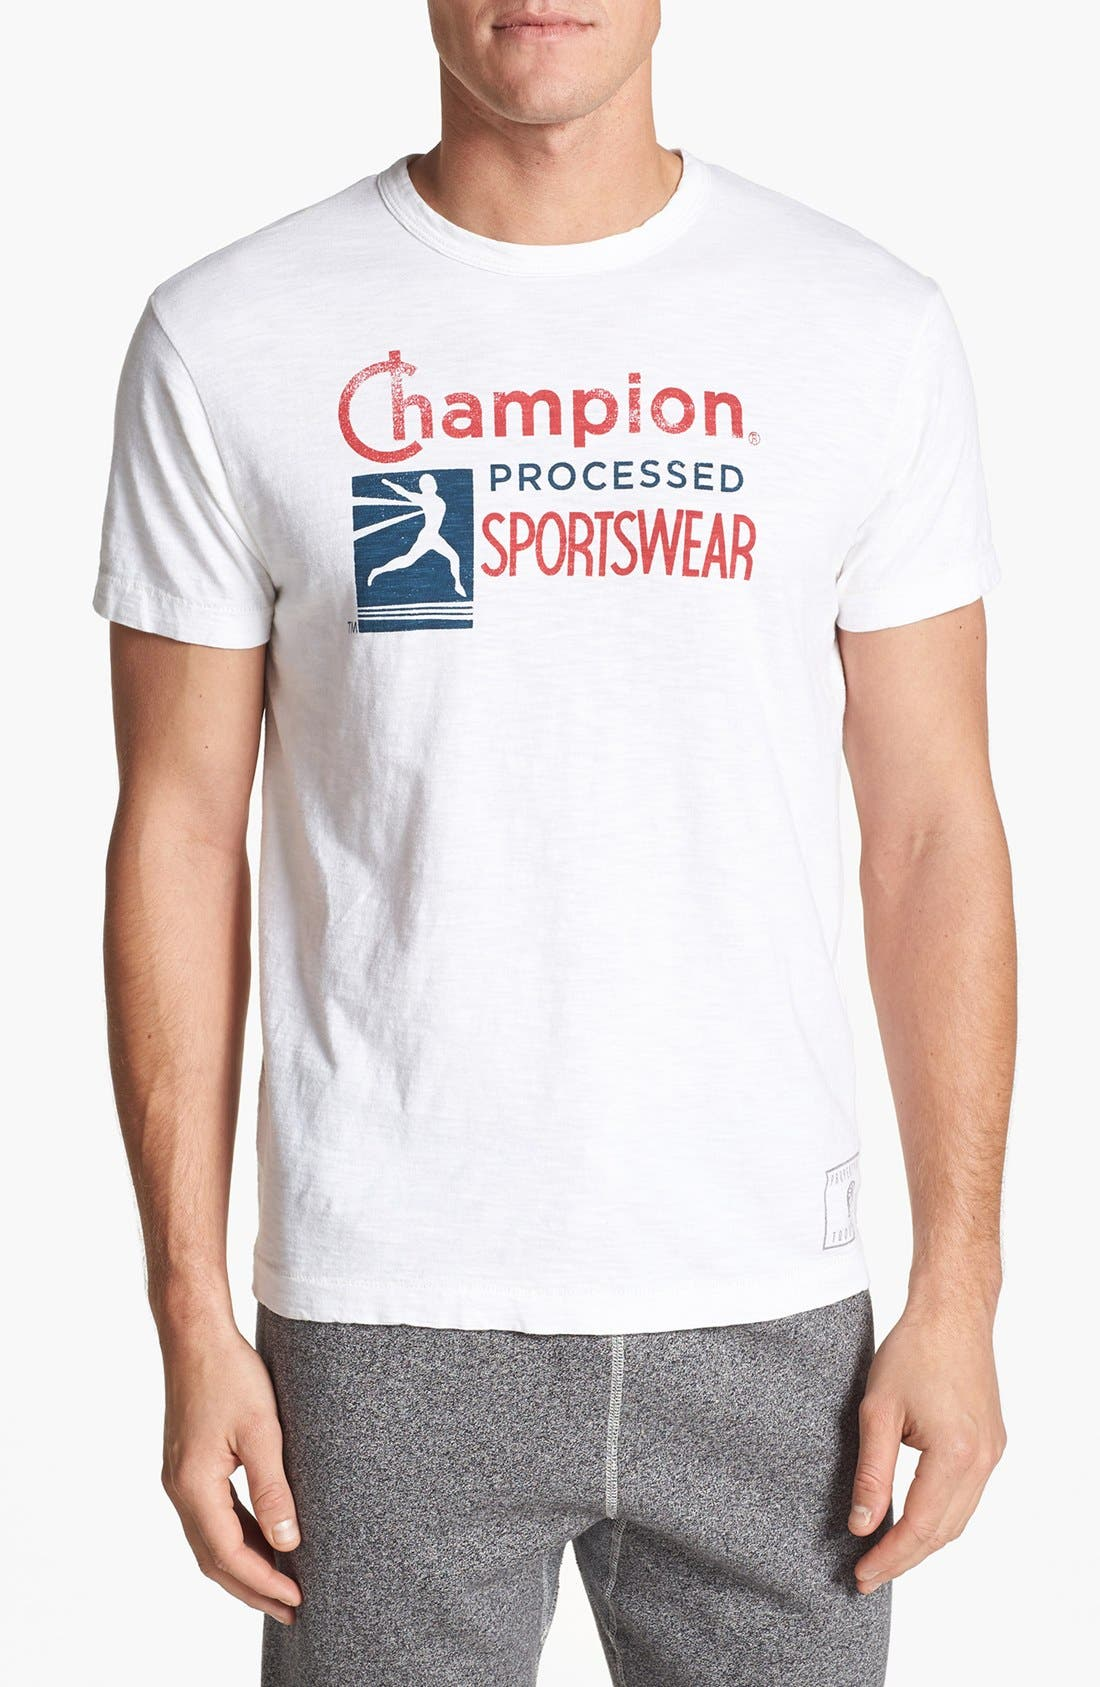 TODD SNYDER + CHAMPION 'Process' T-Shirt, Main, color, 100